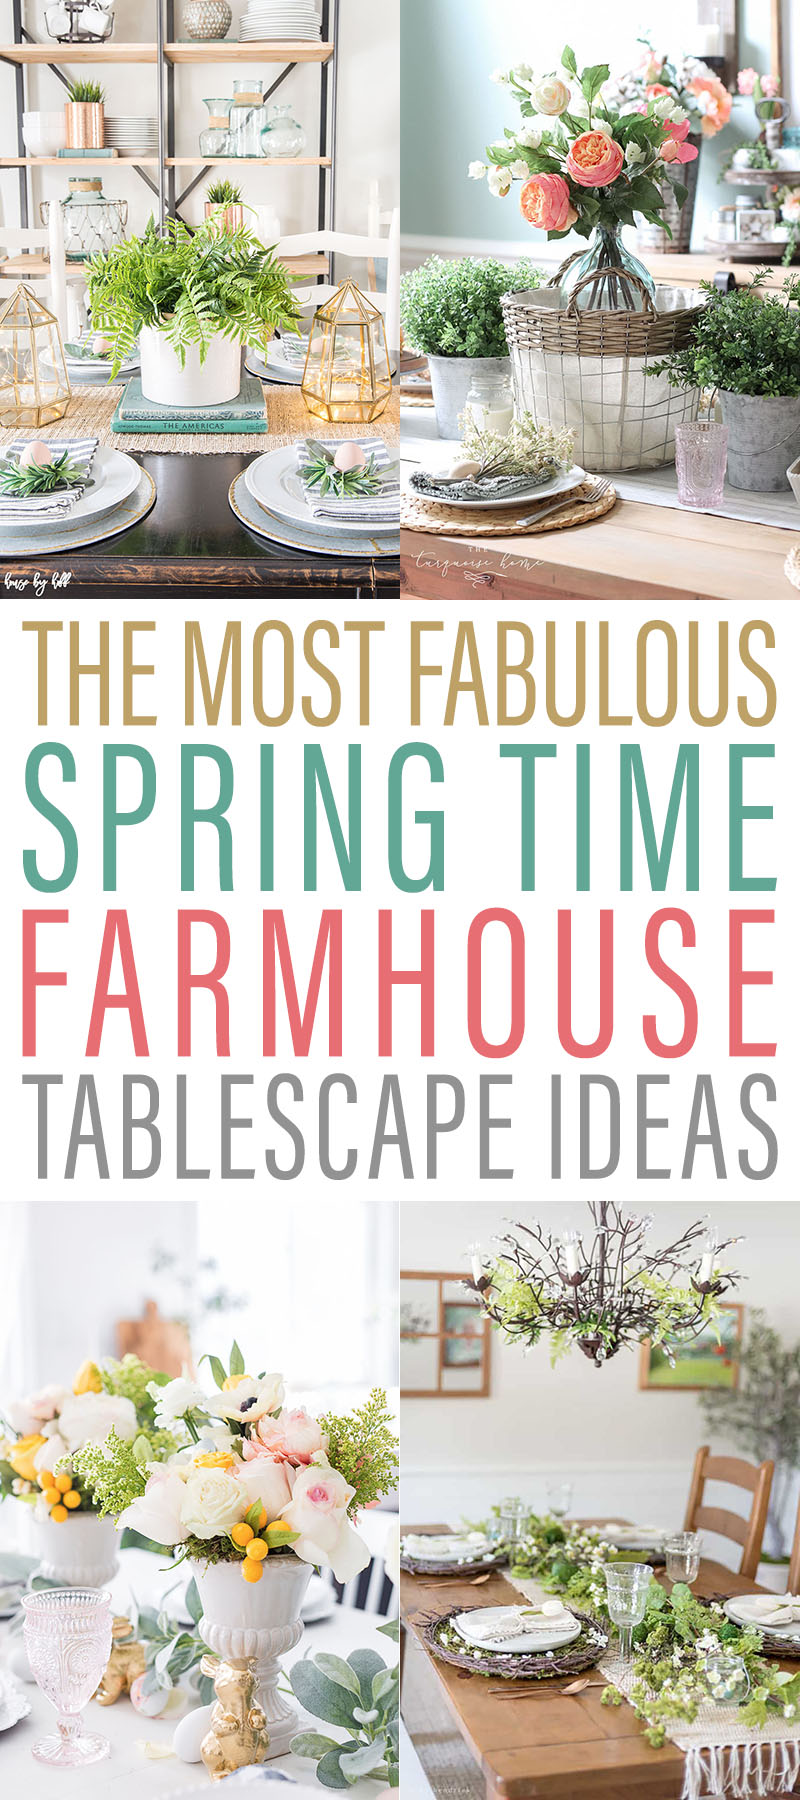 The Most Fabulous Spring Time Farmhouse Tablescape Ideas